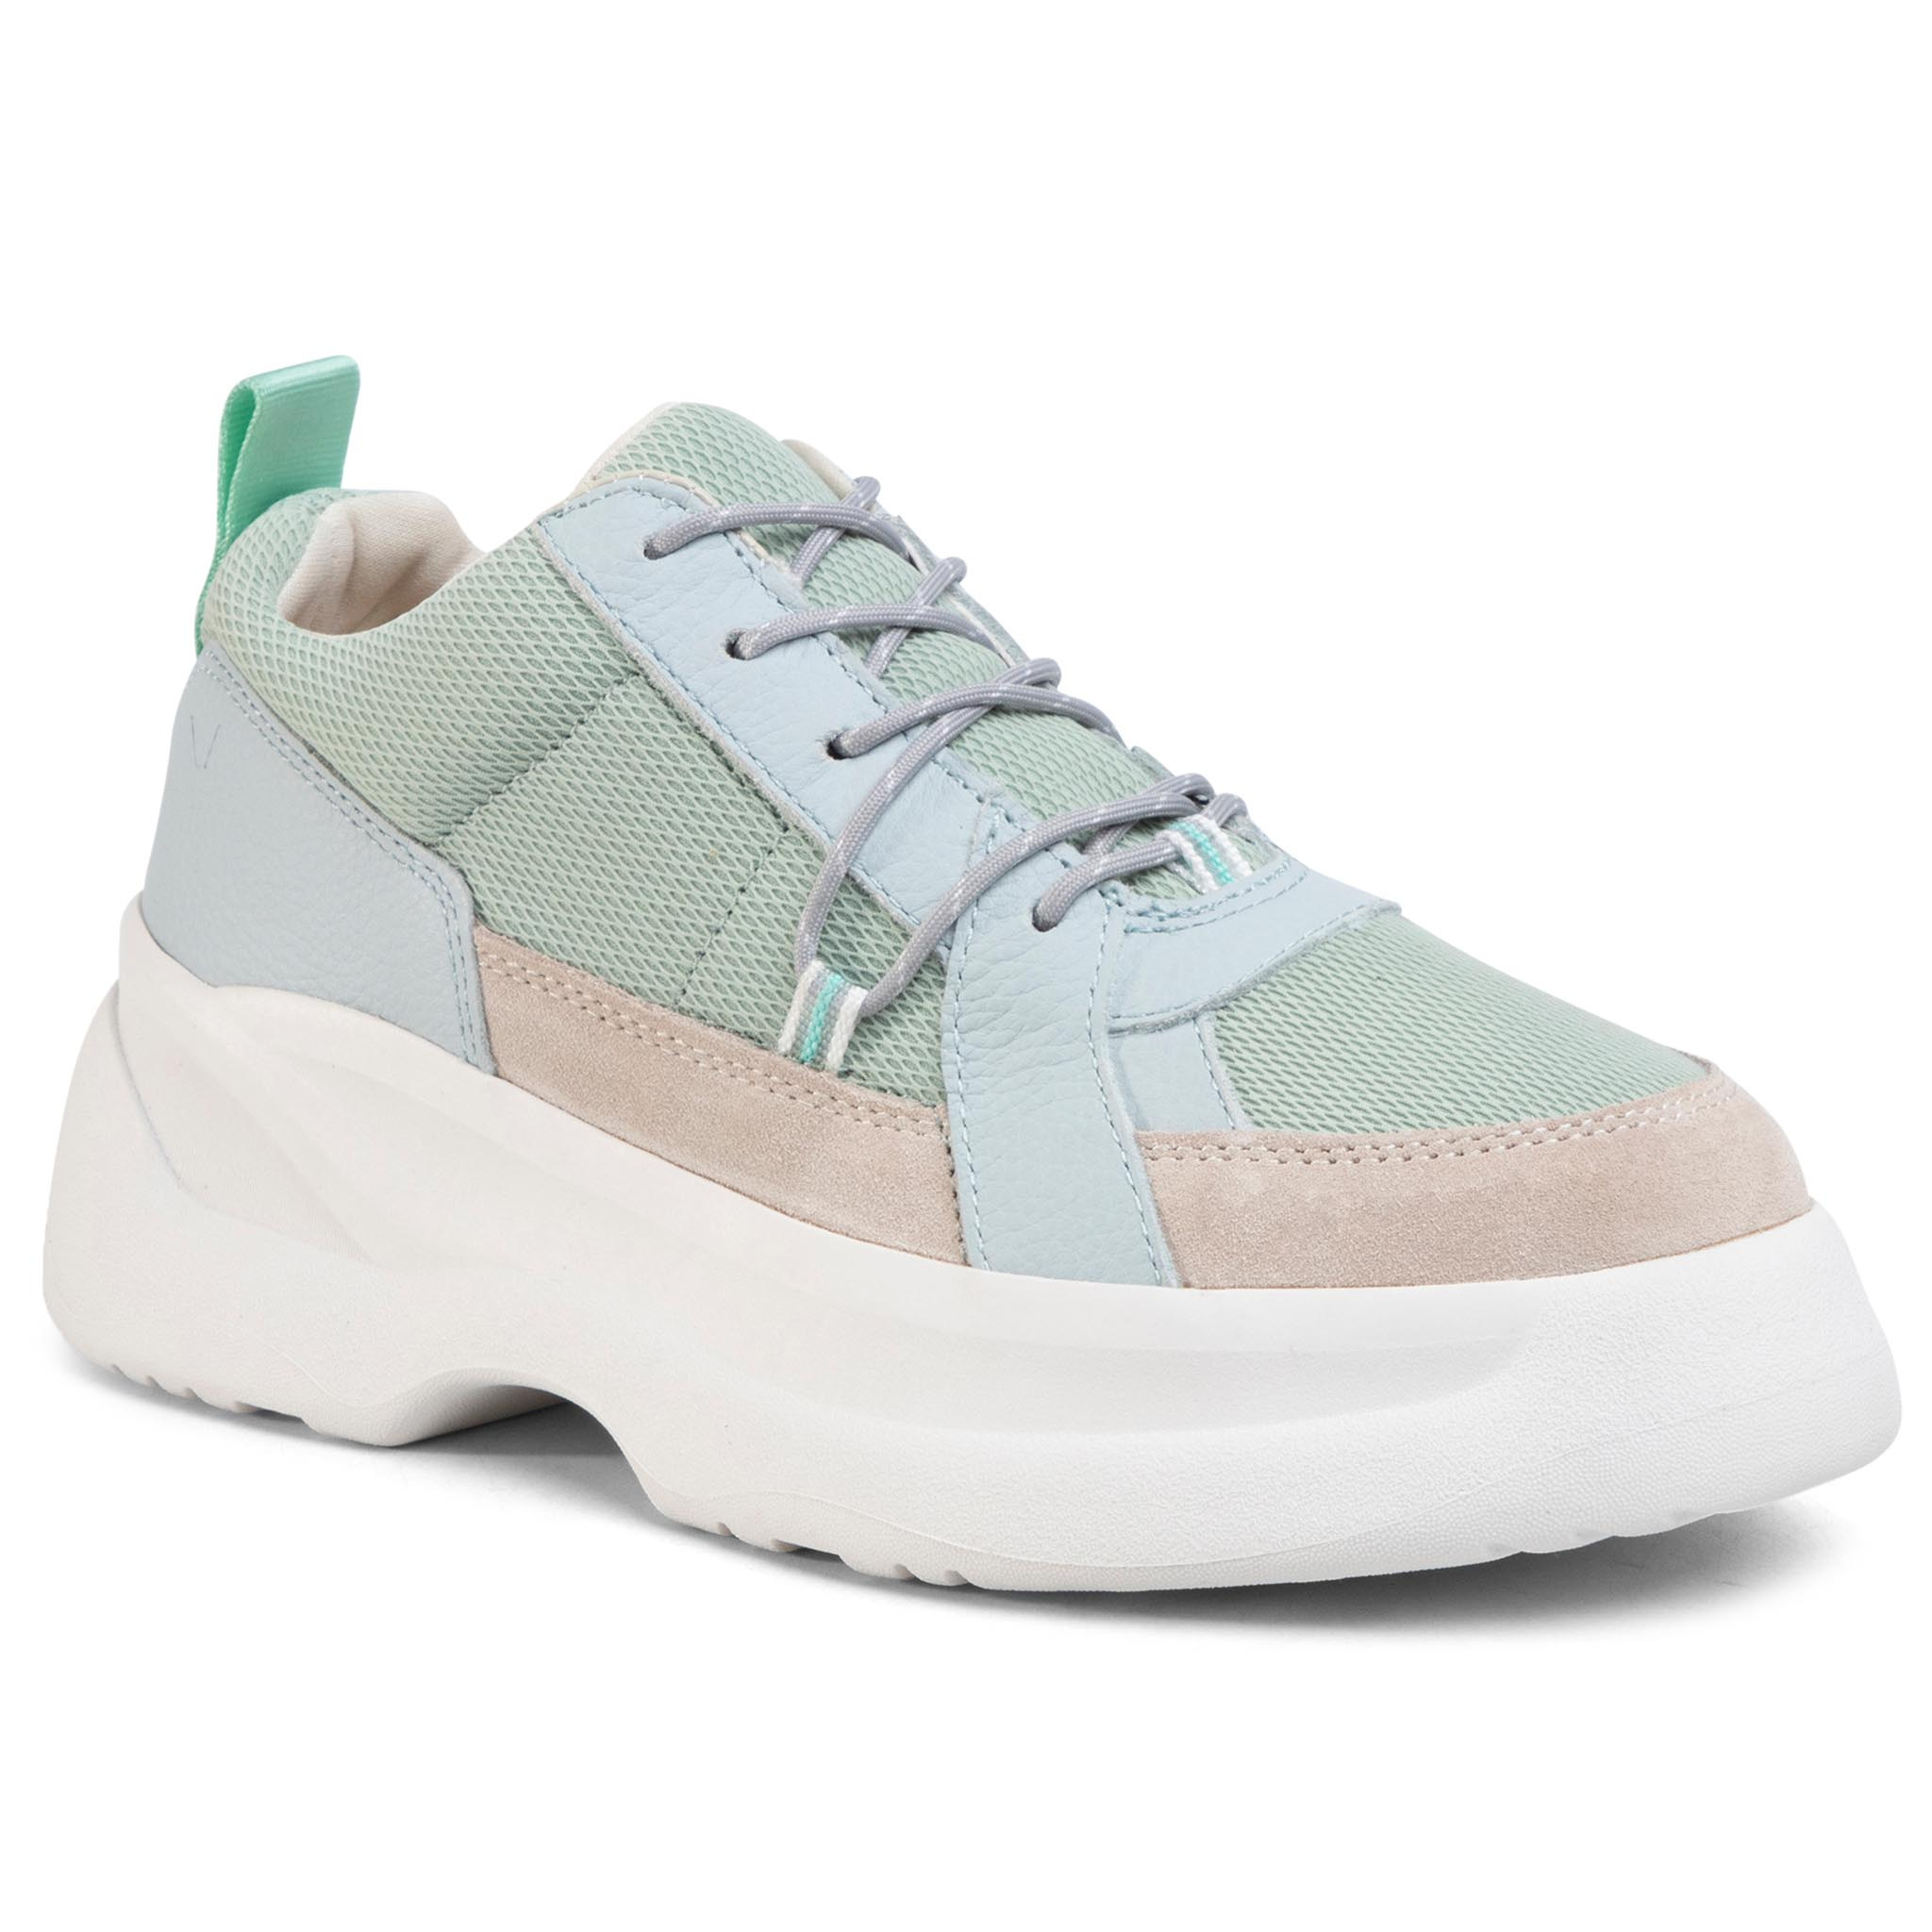 Sneakers VAGABOND - Indicator 4926-102-83 Dusty Mint Multi